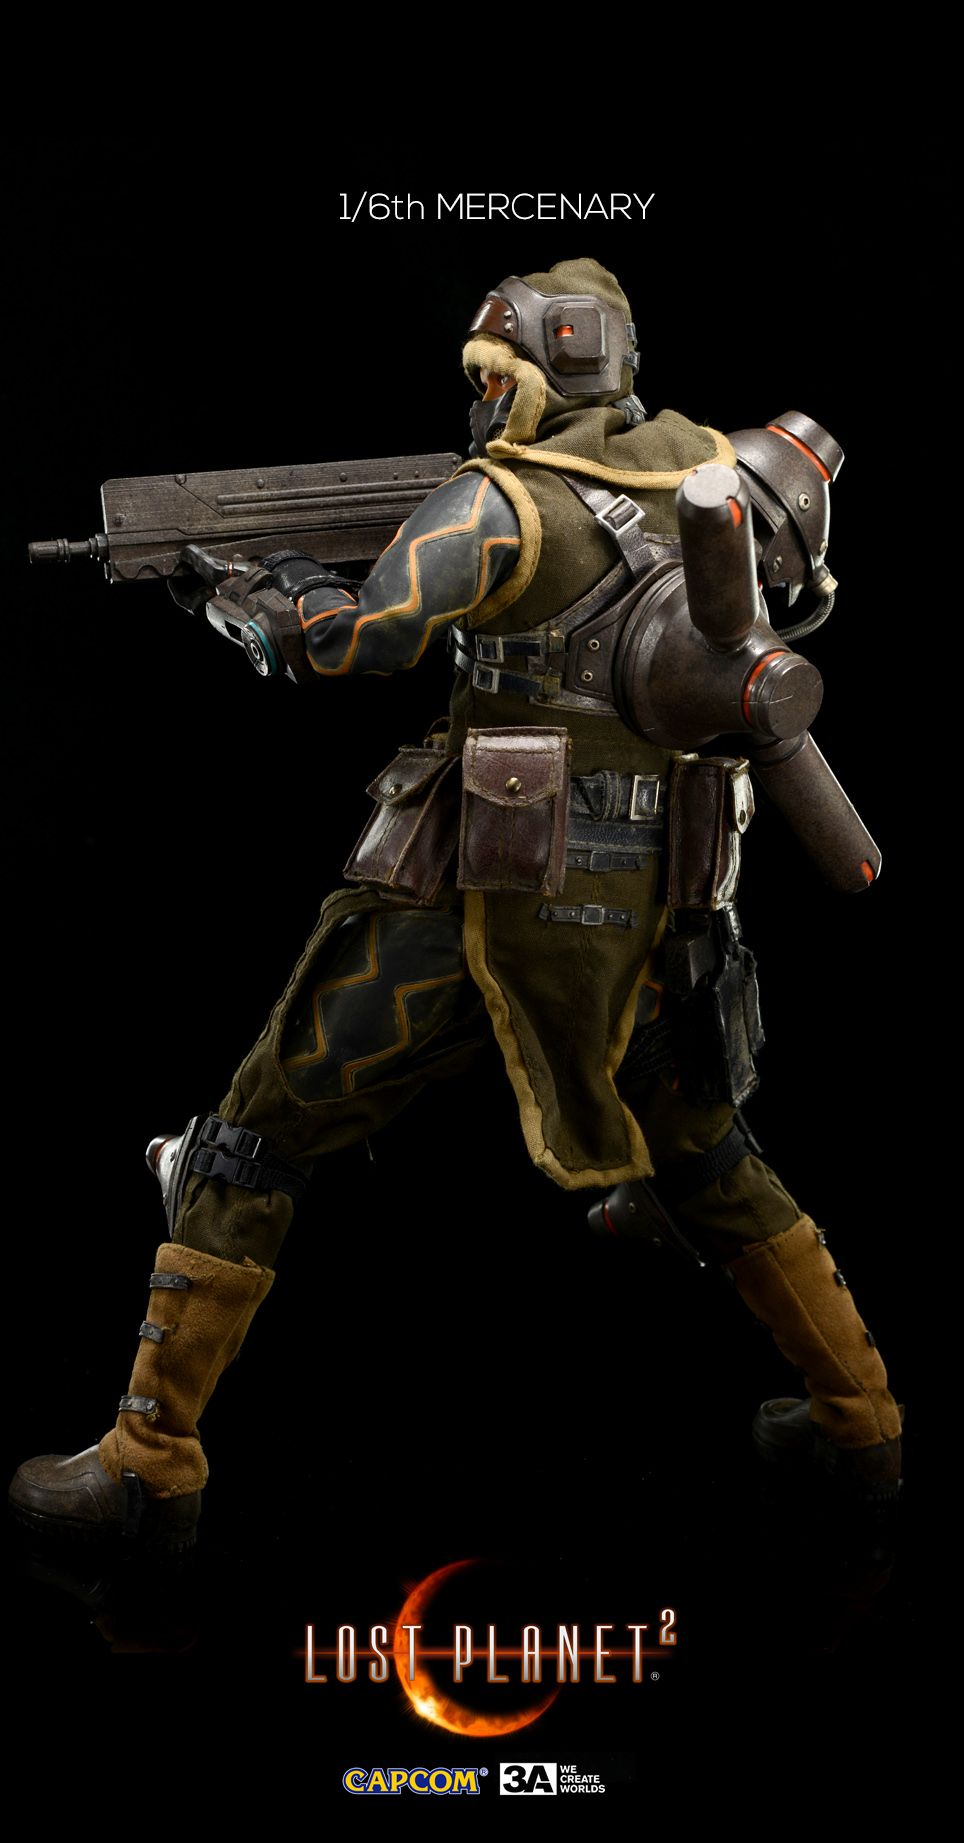 1 6th Scale Mercenary From Lost Planet 2 Will Go Up On Pre Order On June 22nd 9 00am Hong Kong Time At Www Capcom Post Apocalyptic Fashion Apocalyptic Fashion